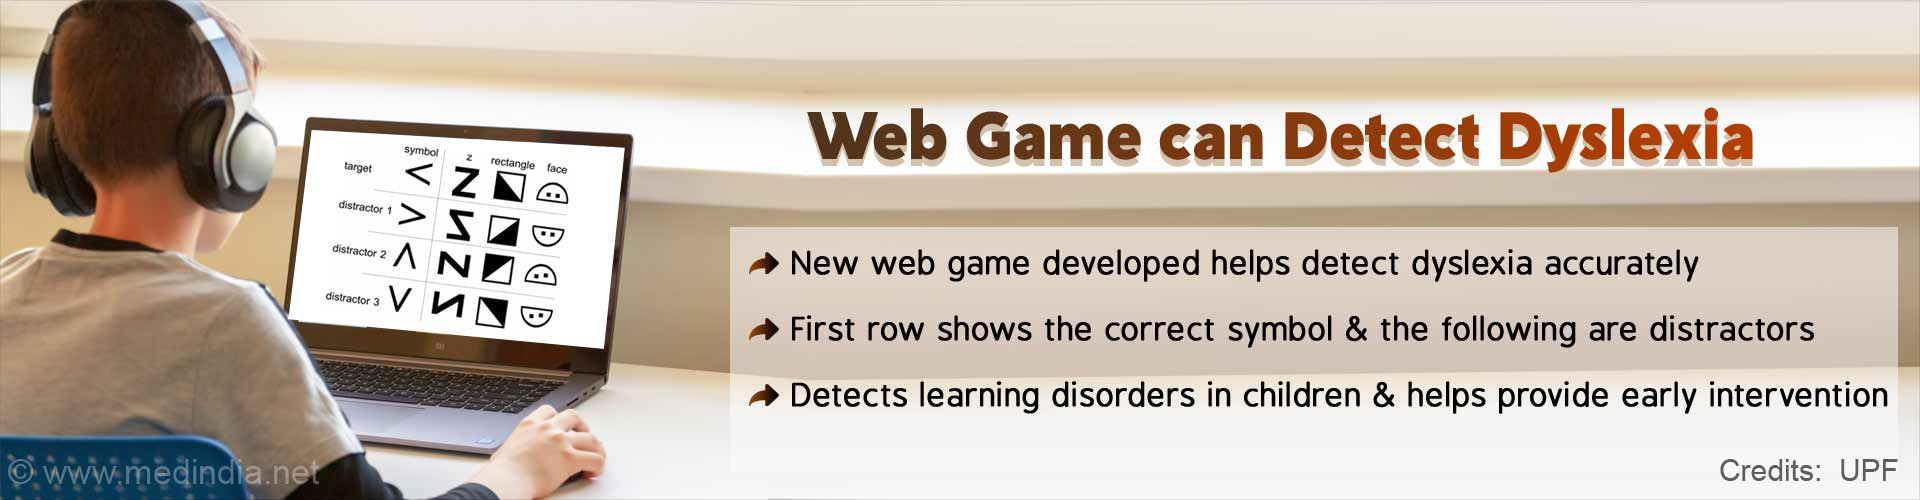 Dyslexia Screening Made Easy with a New Web Game